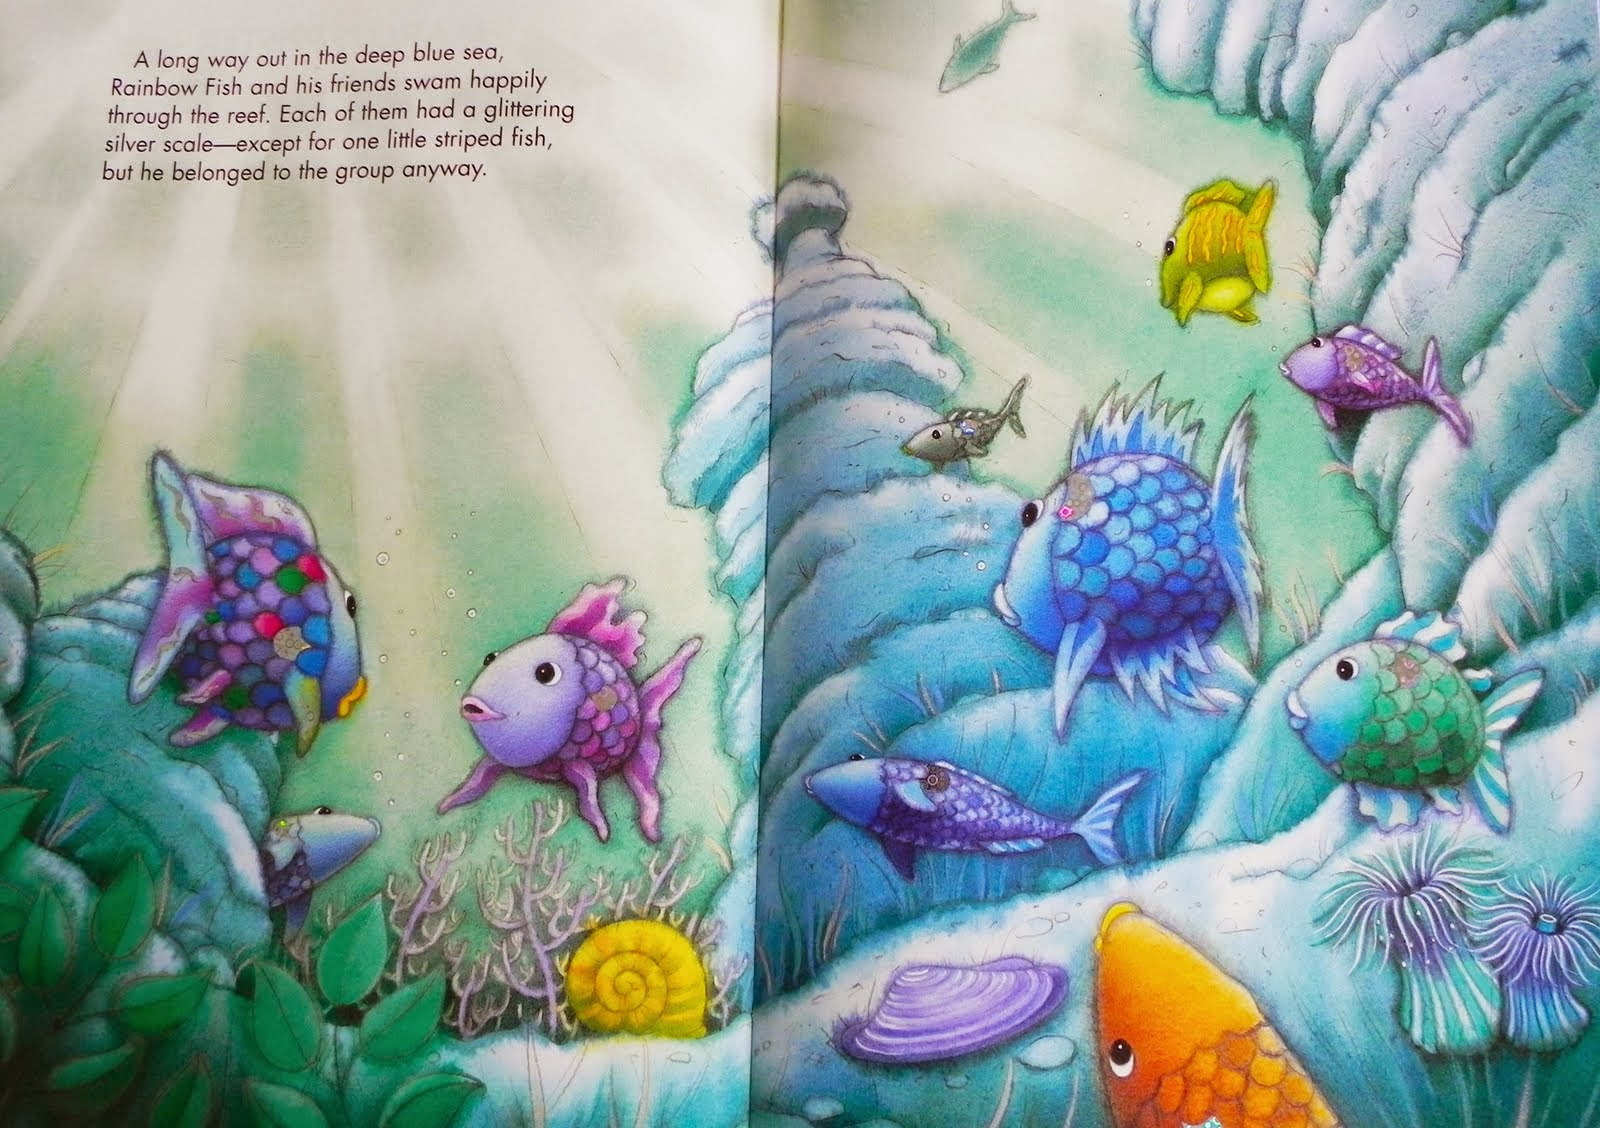 Children 39 s literature the rainbow fish for The rainbow fish